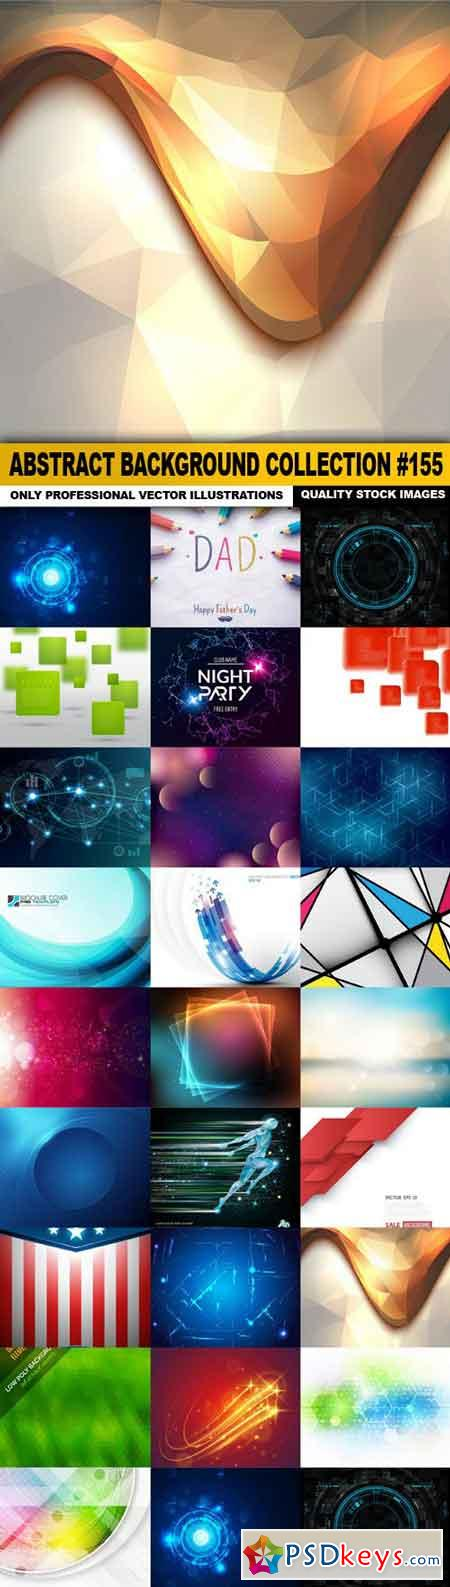 Abstract Background Collection #155 - 25 Vector